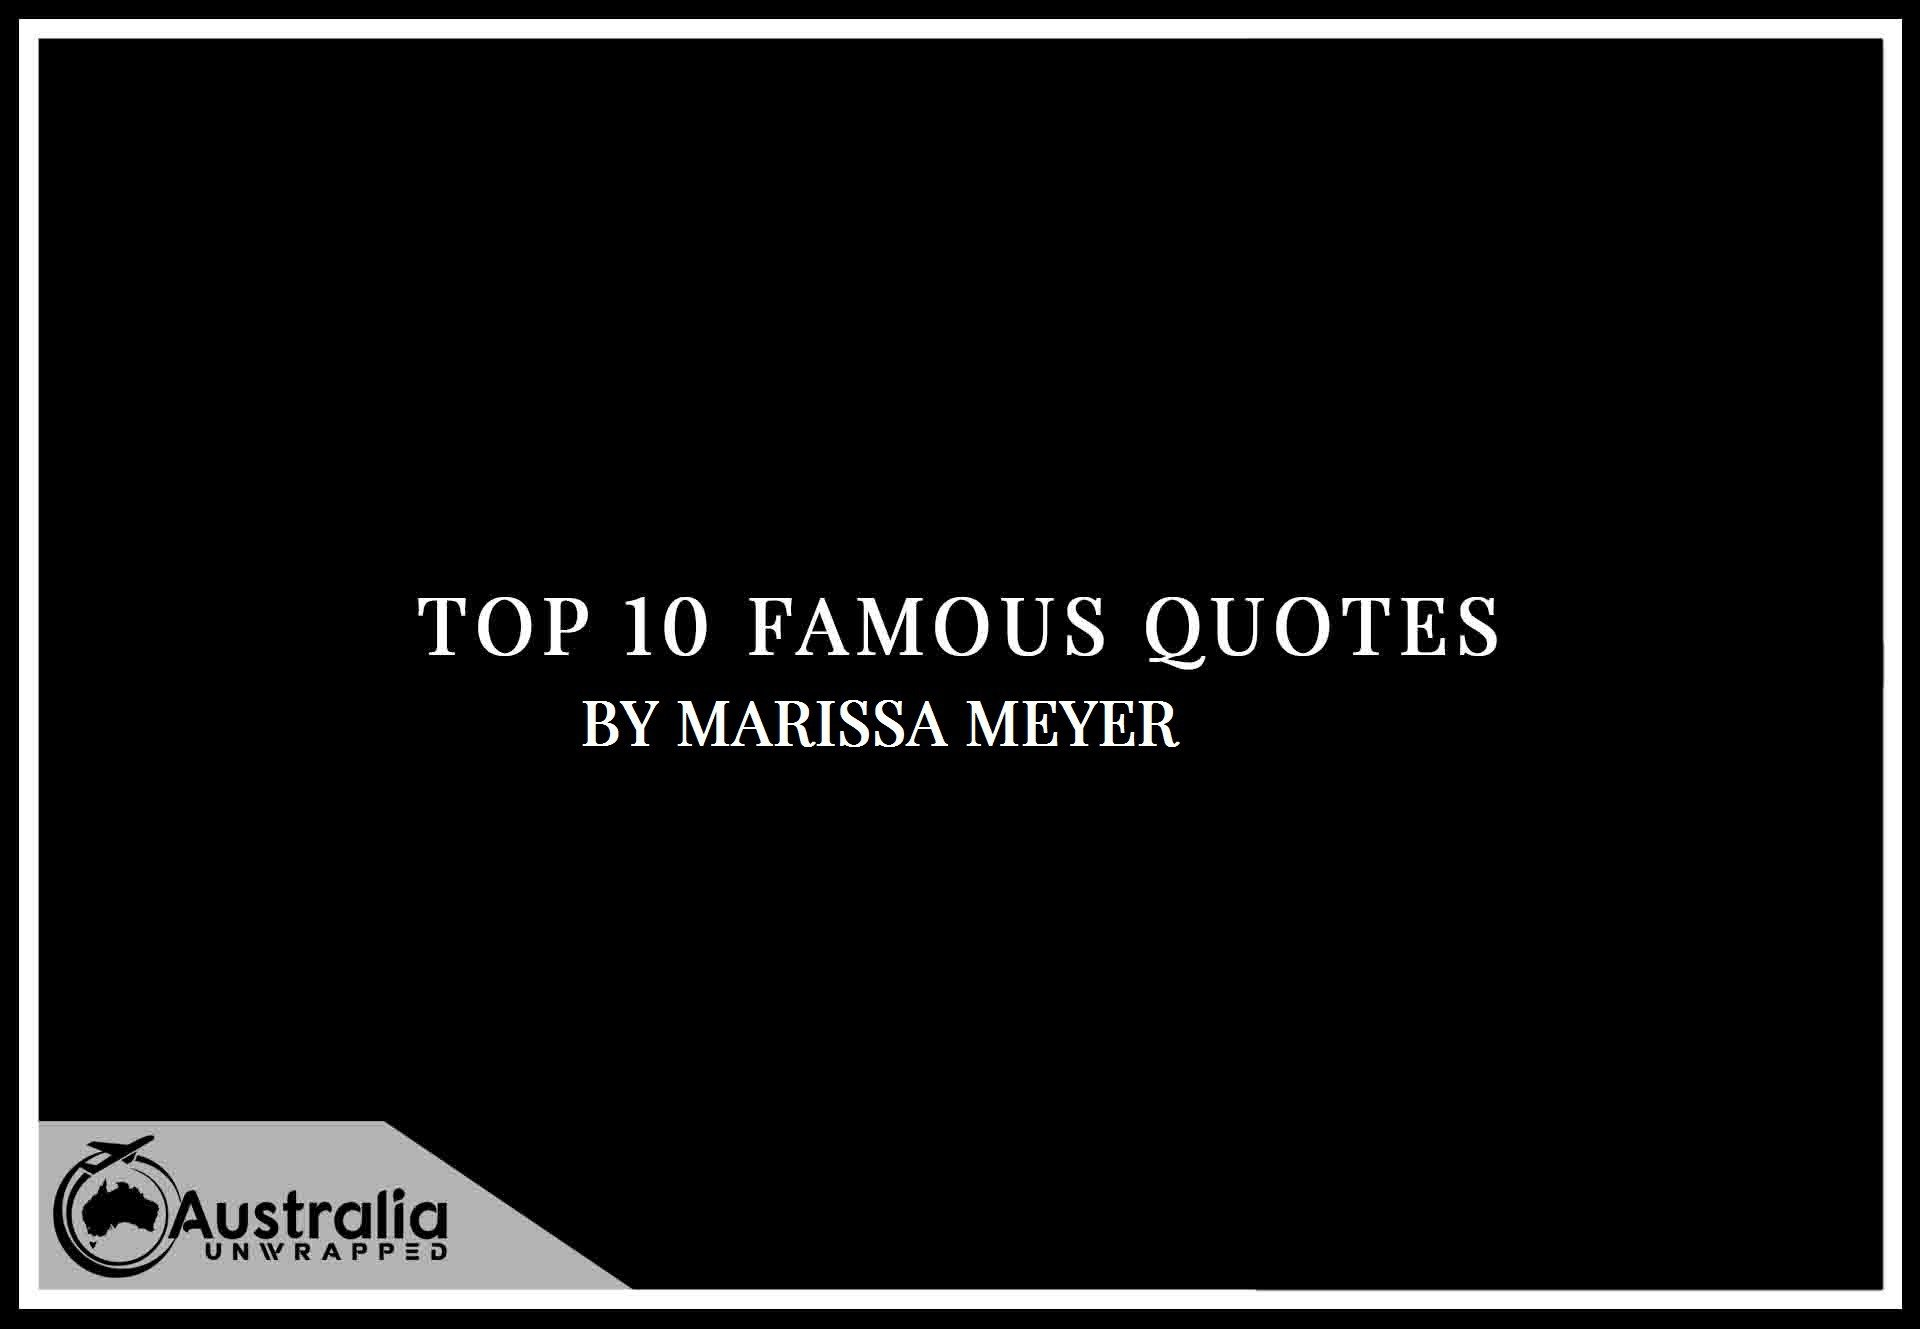 Marissa Meyer's Top 10 Popular and Famous Quotes